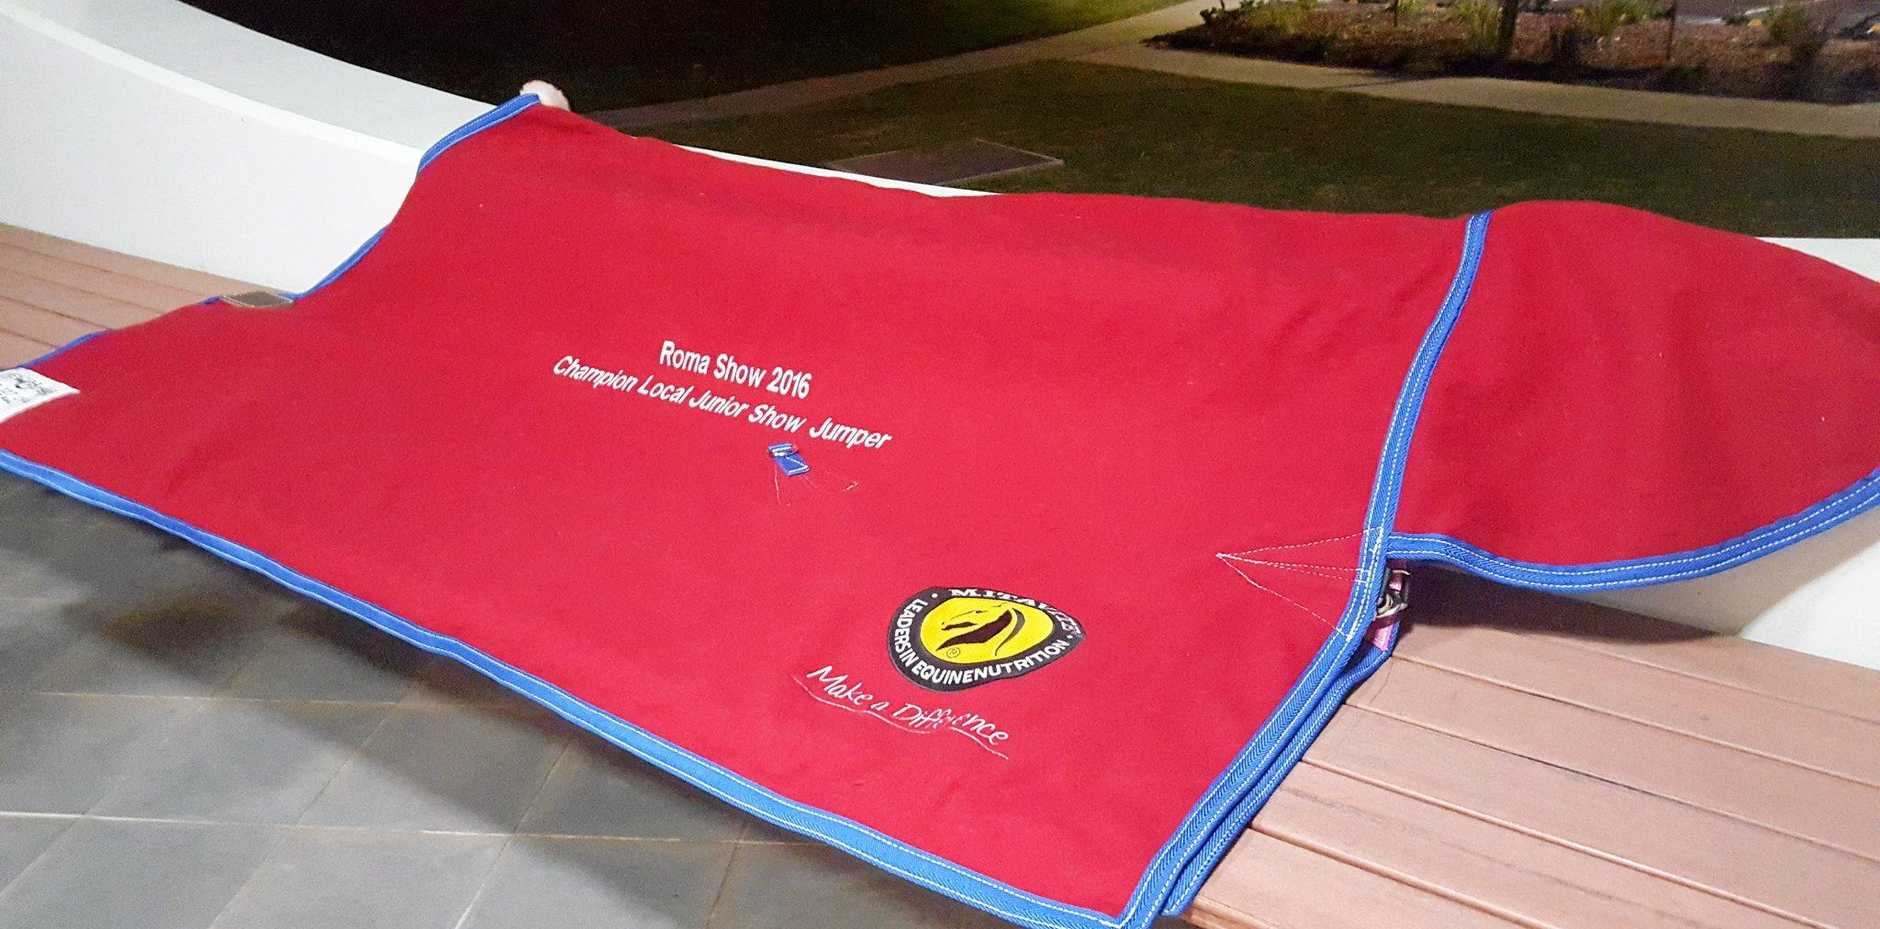 TOP PRIZE: The junior showjumpers at the Roma Show will be vying to win this specially hand-stitched blanket.